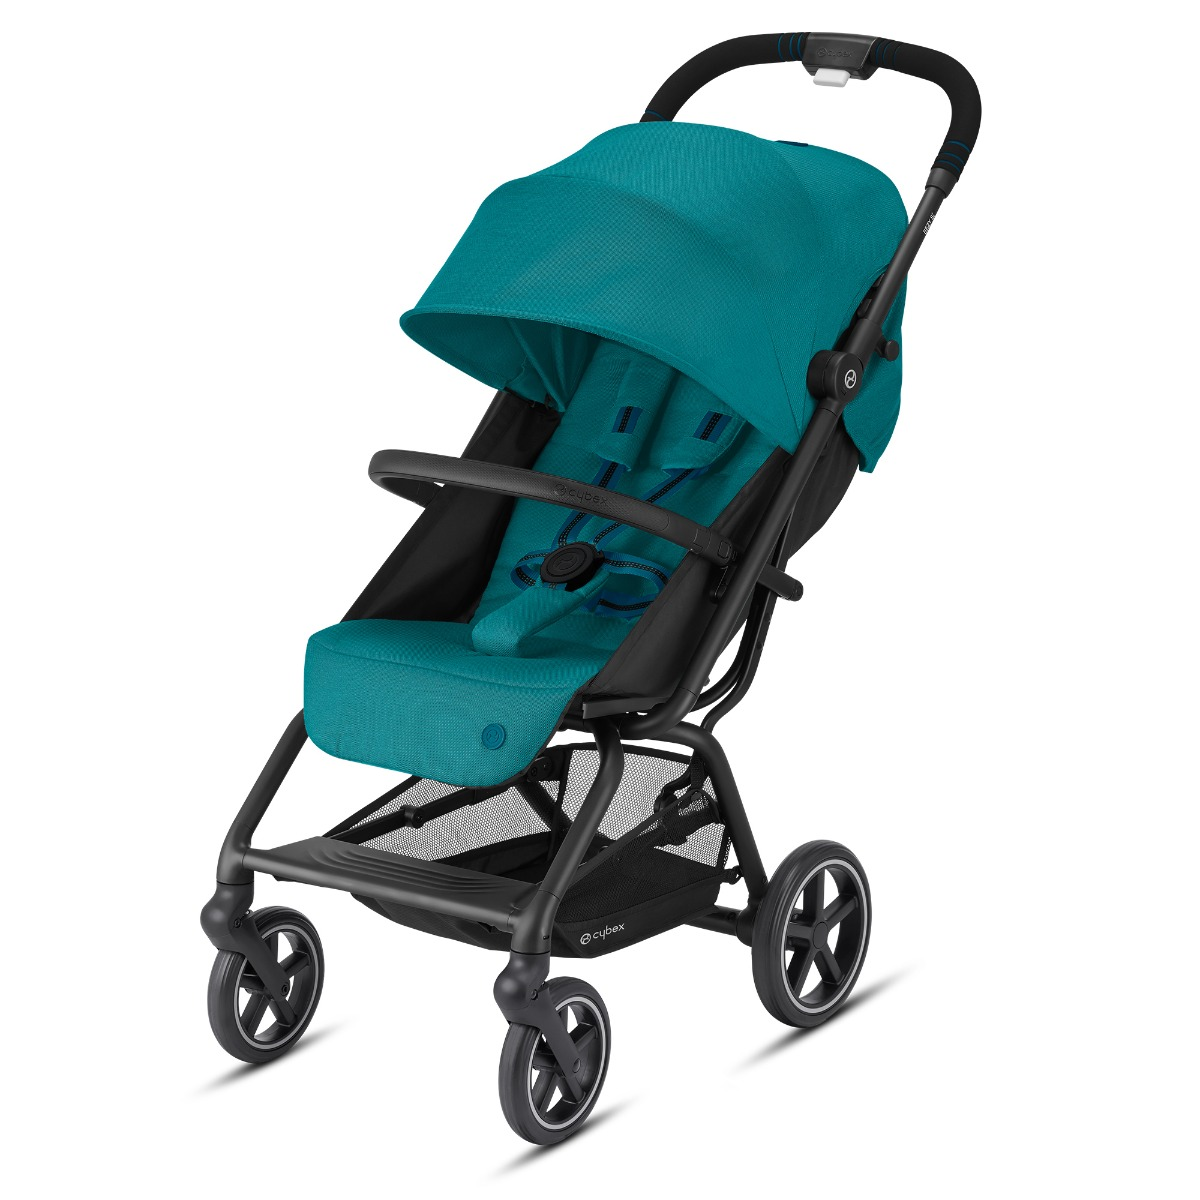 Carucior Cybex, Eezy S+ 2, River Blue